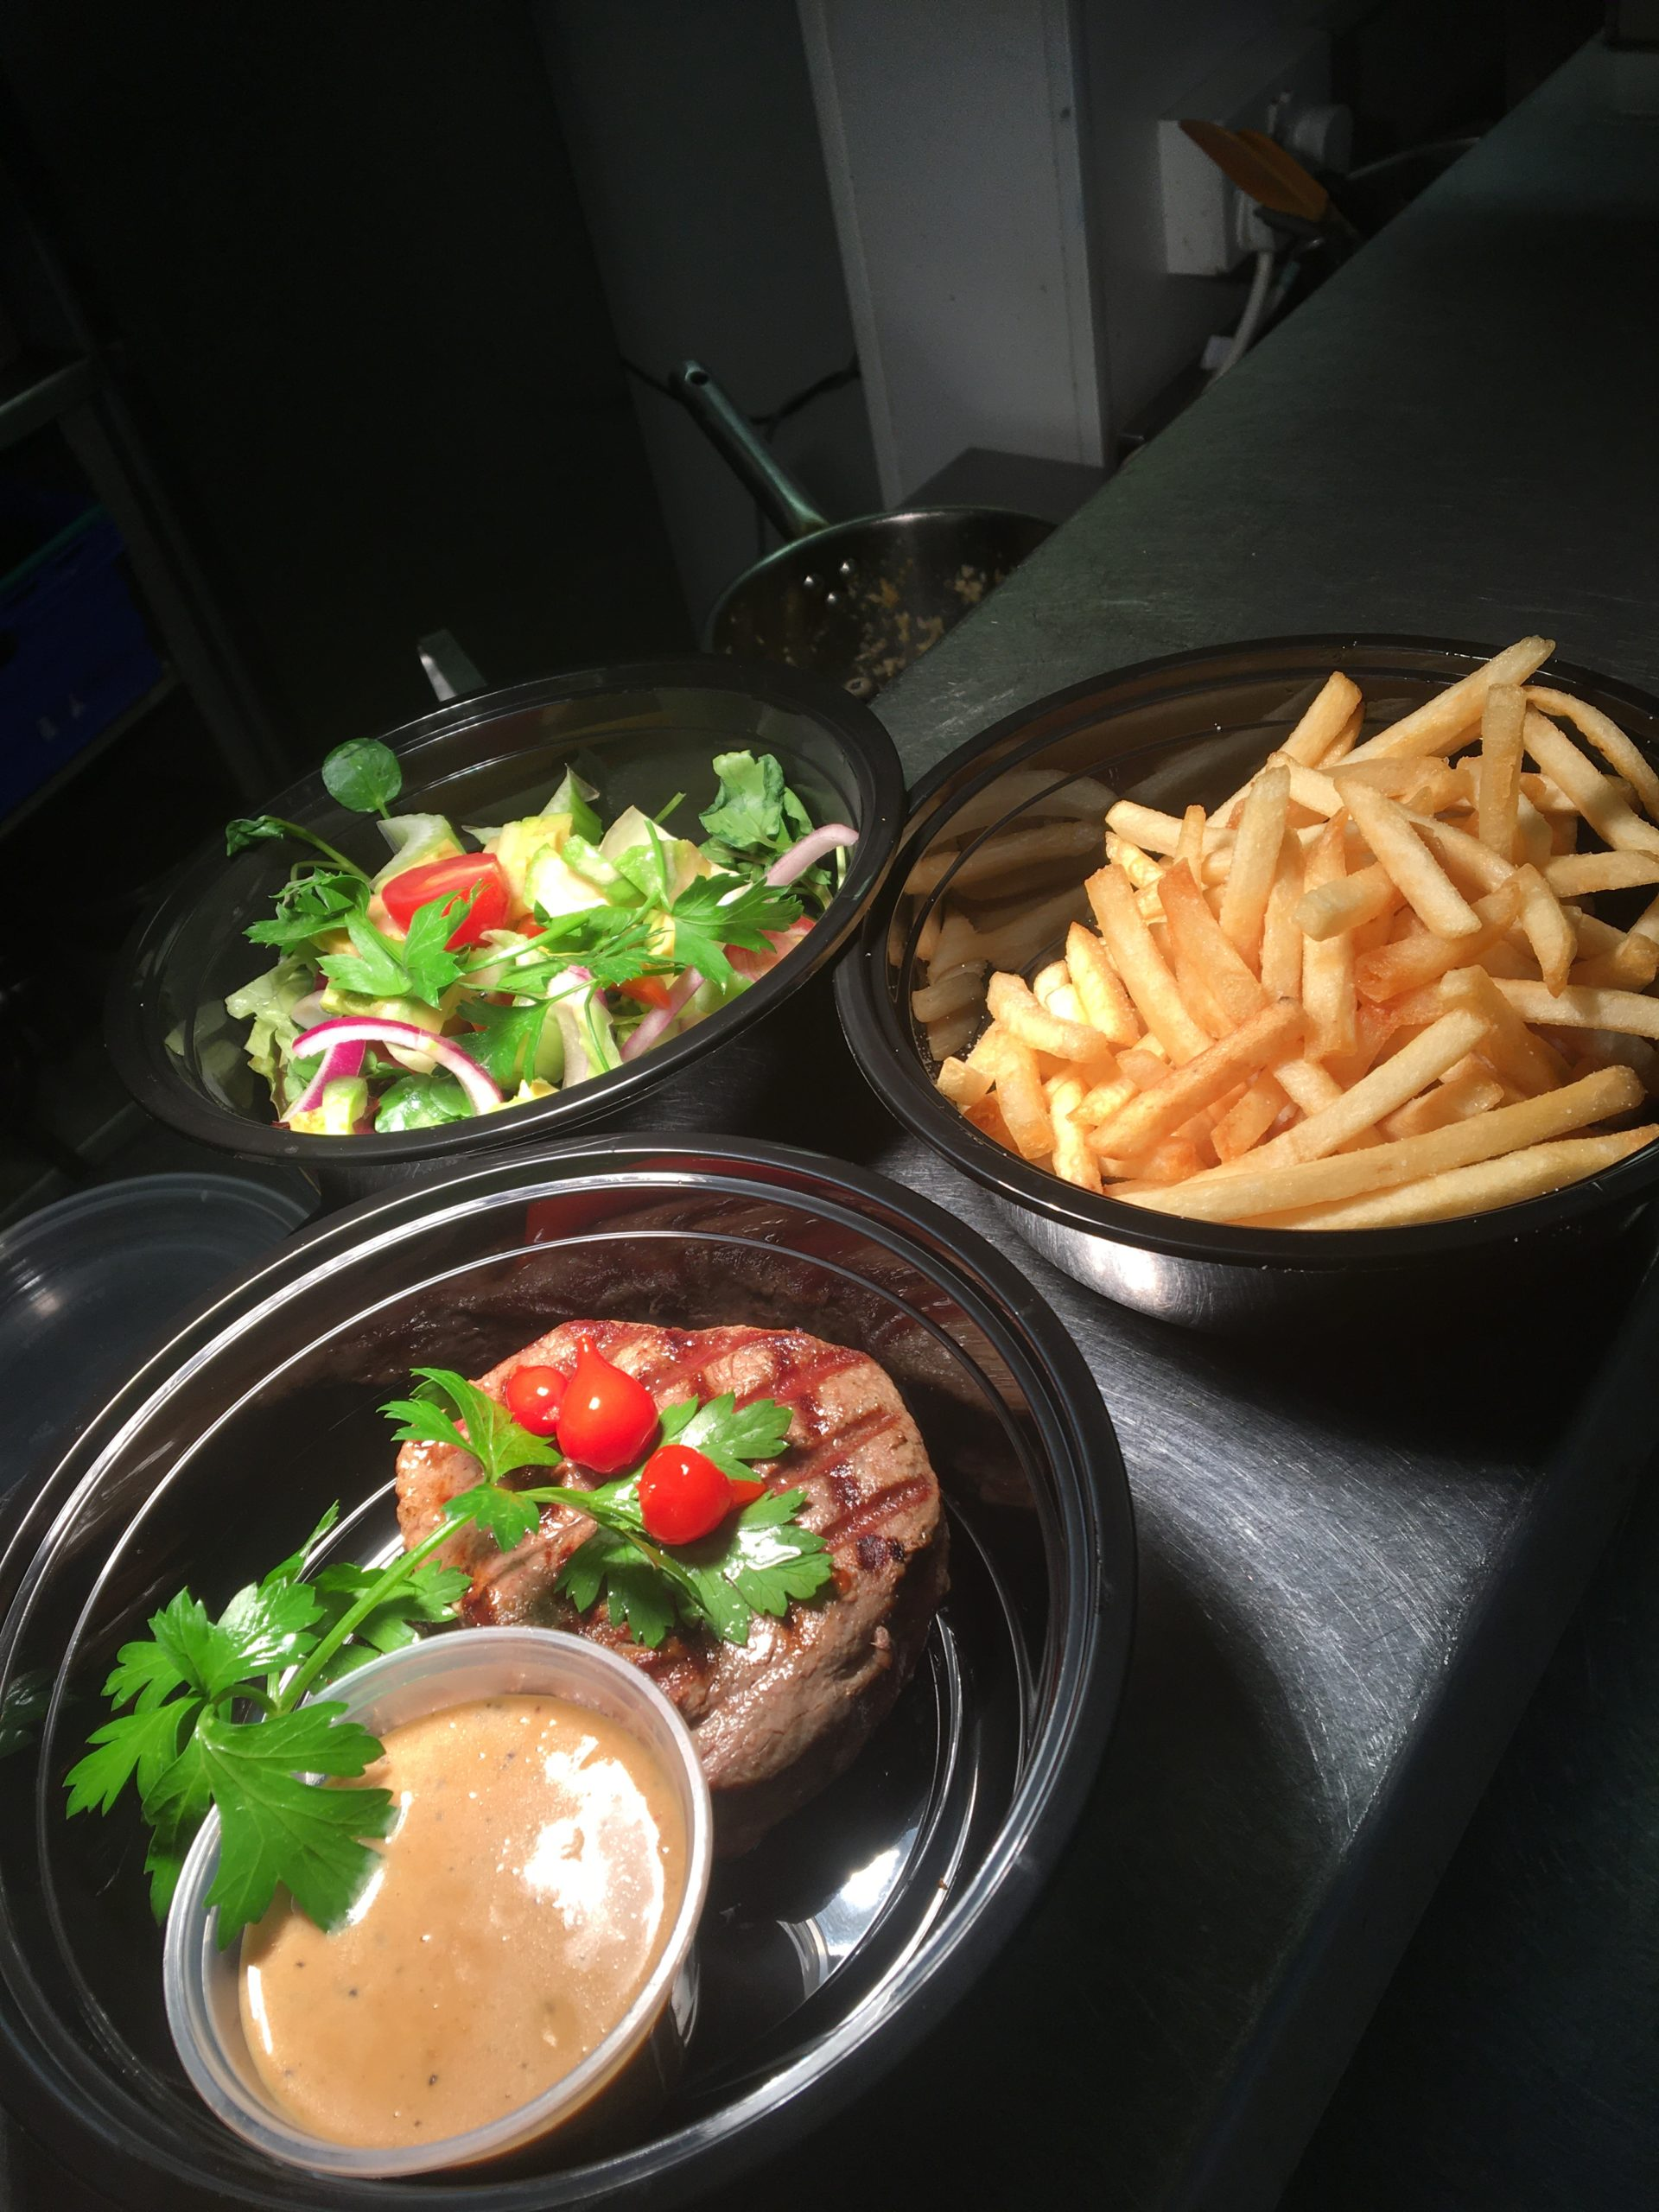 Fillet steak, fries and salad served with brandy and peppercorn sauce